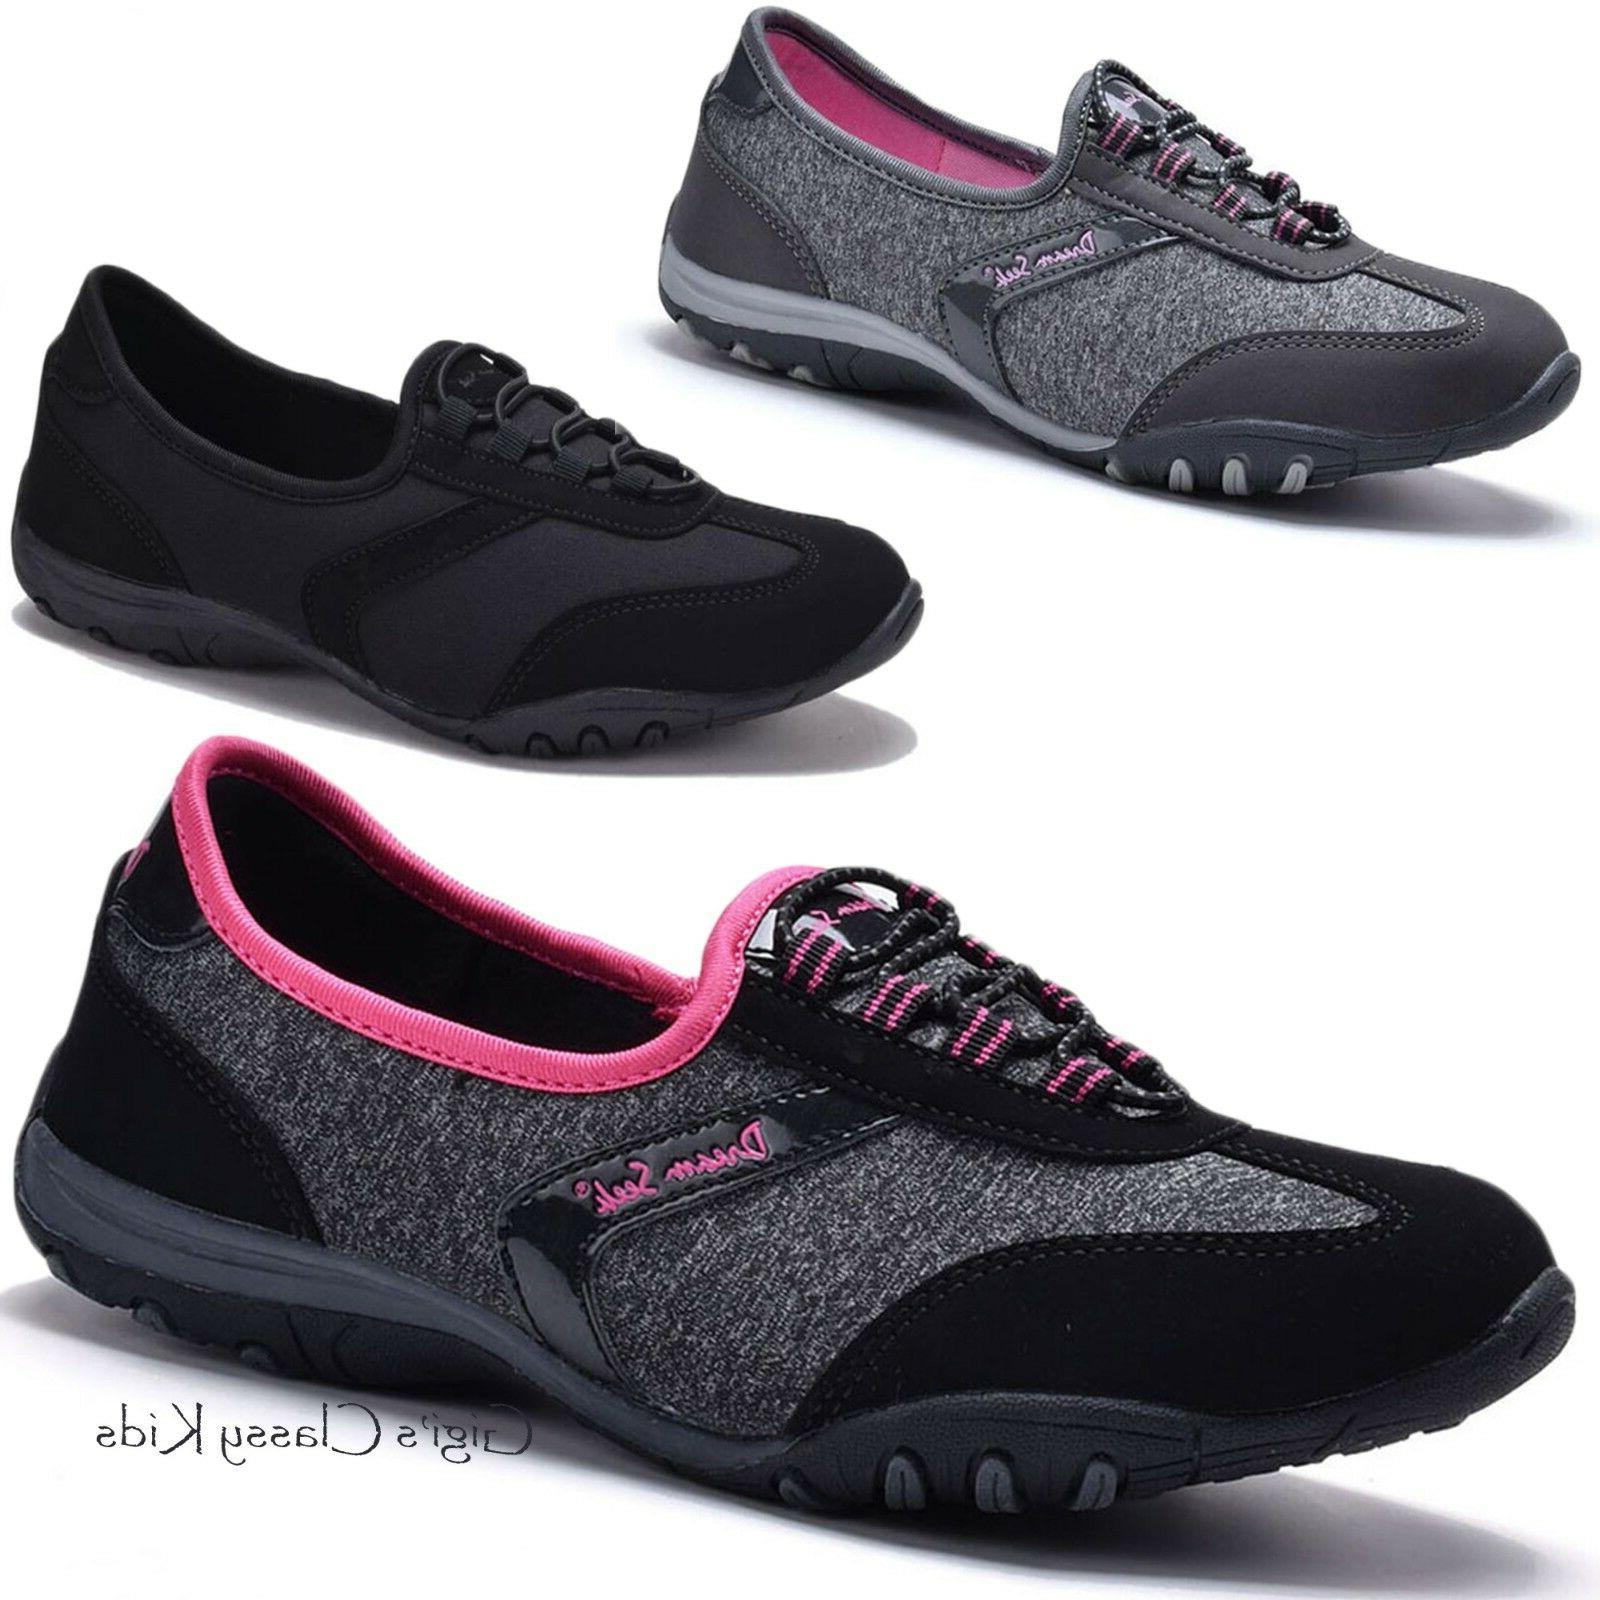 new women s sneakers athletic tennis shoes